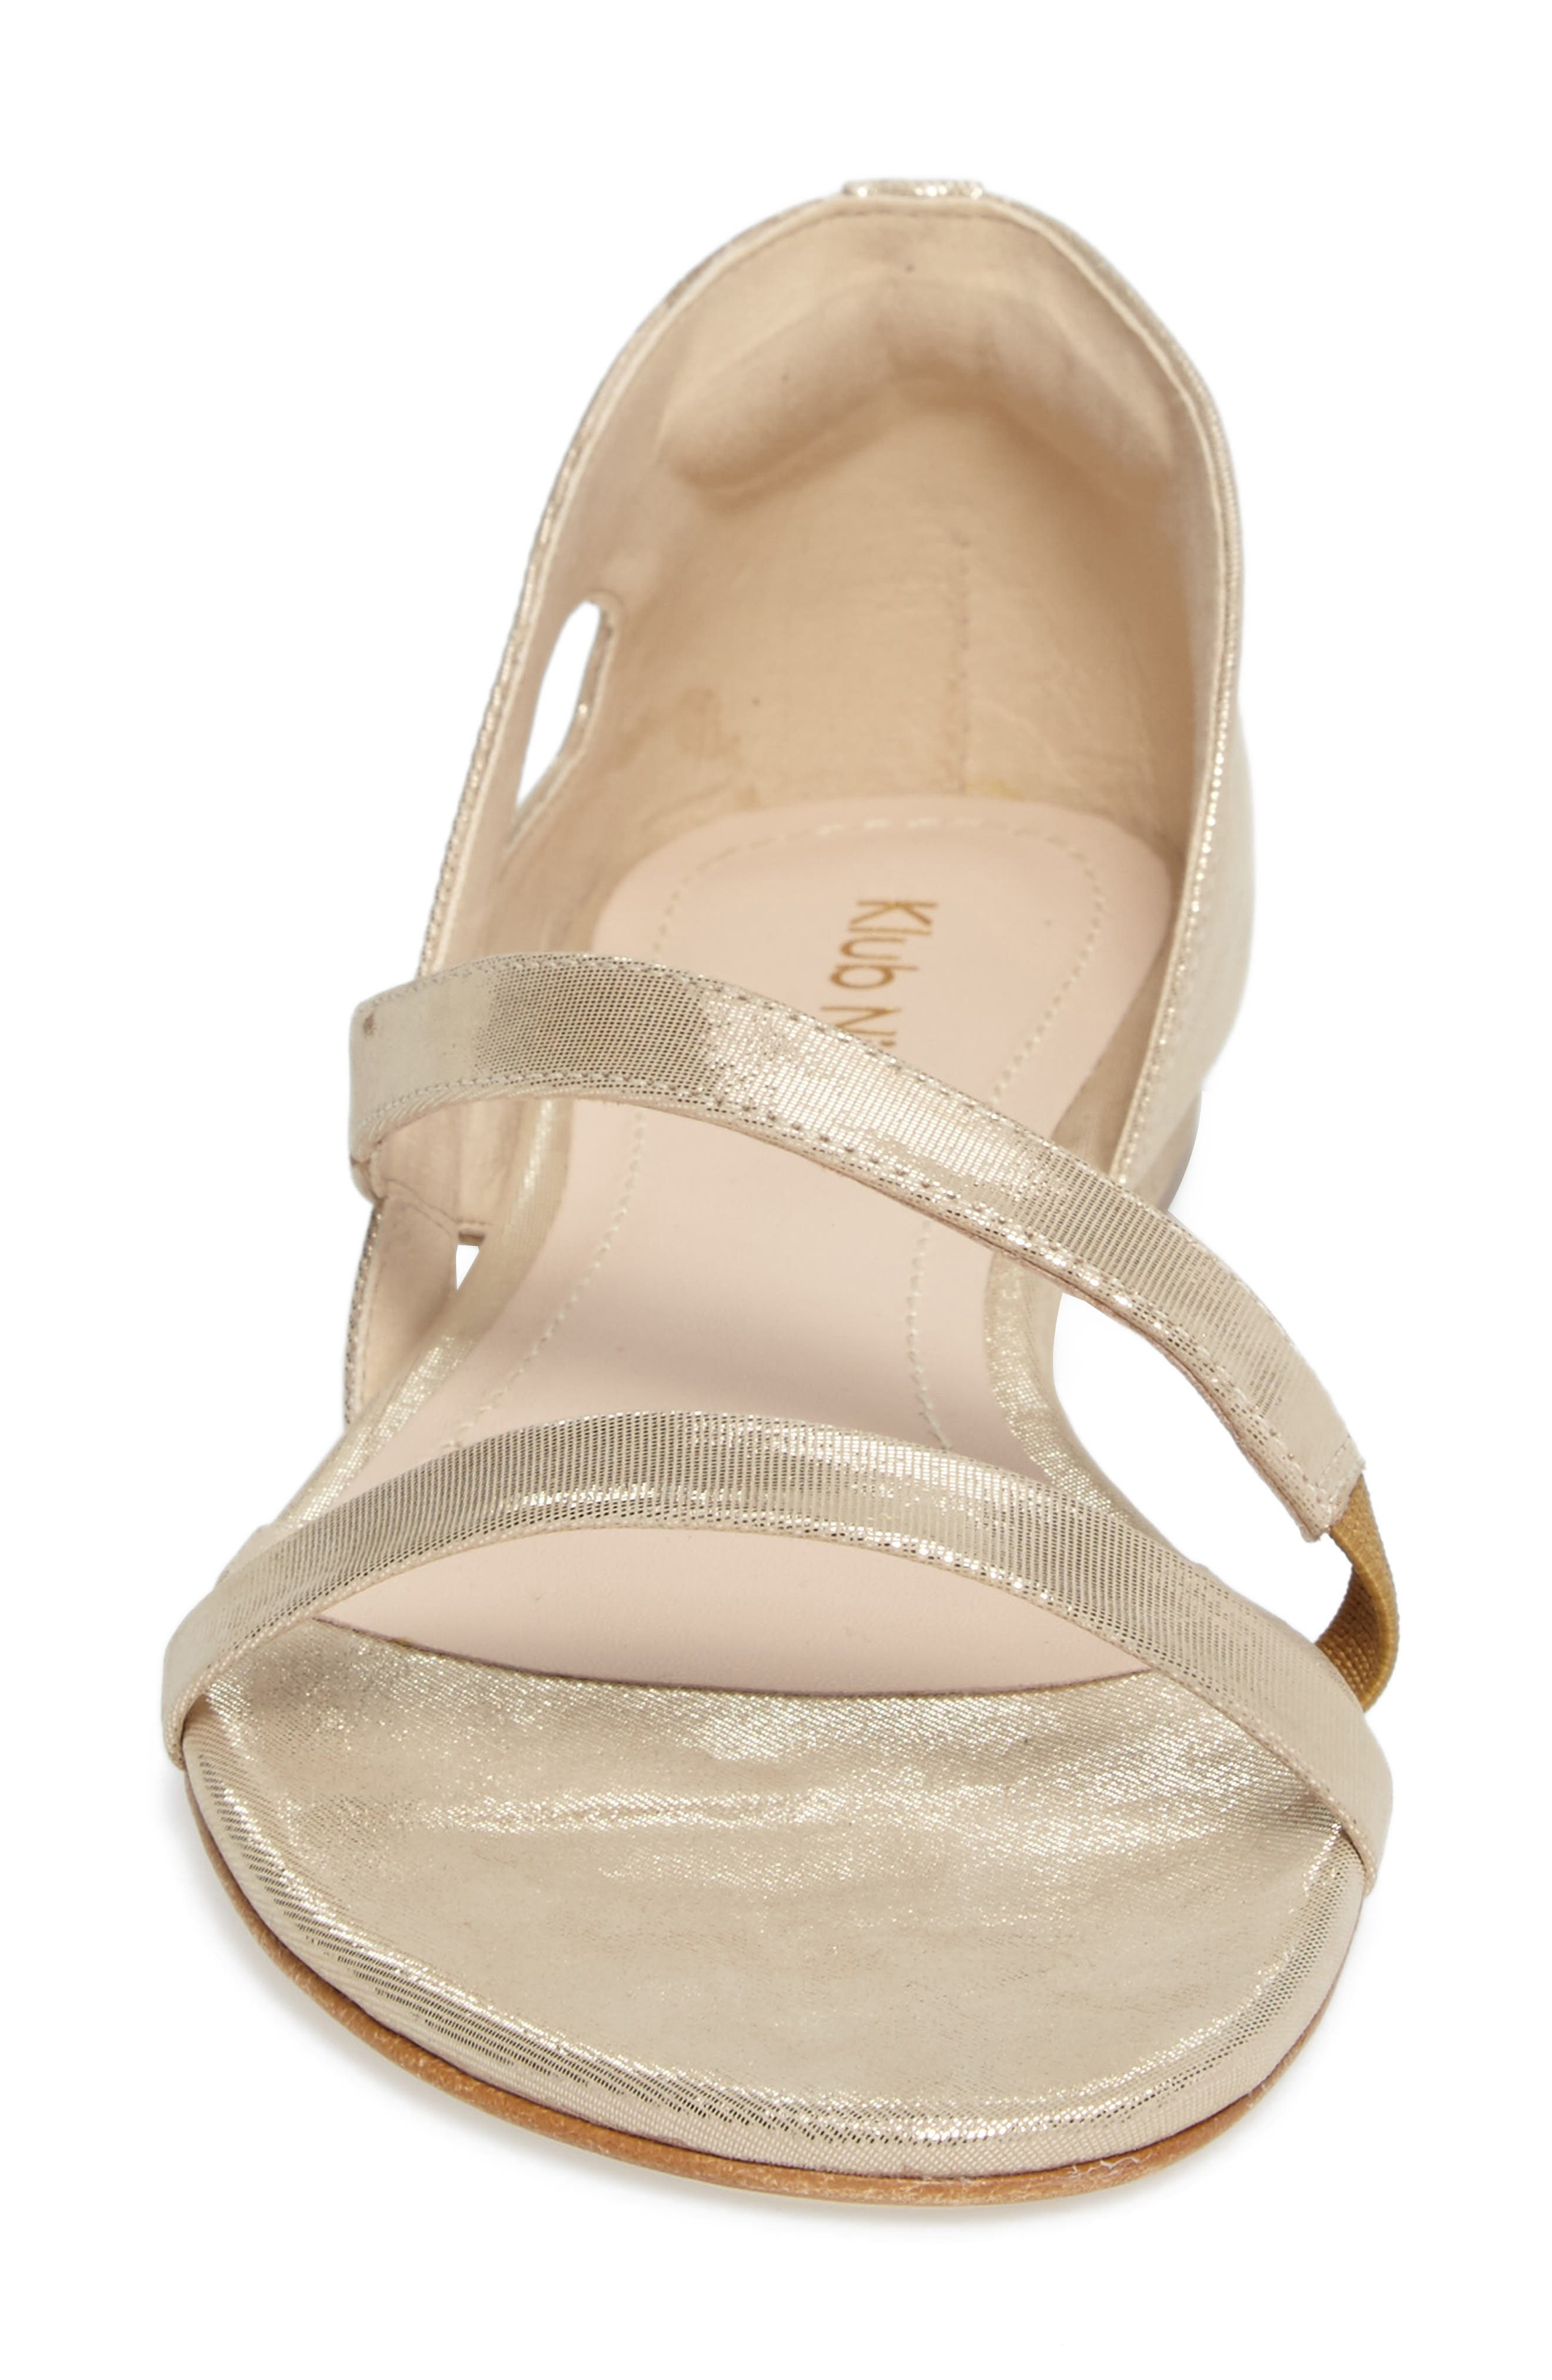 KLUB NICO, Jeanne Sandal, Alternate thumbnail 4, color, CHAMPAGNE LEATHER